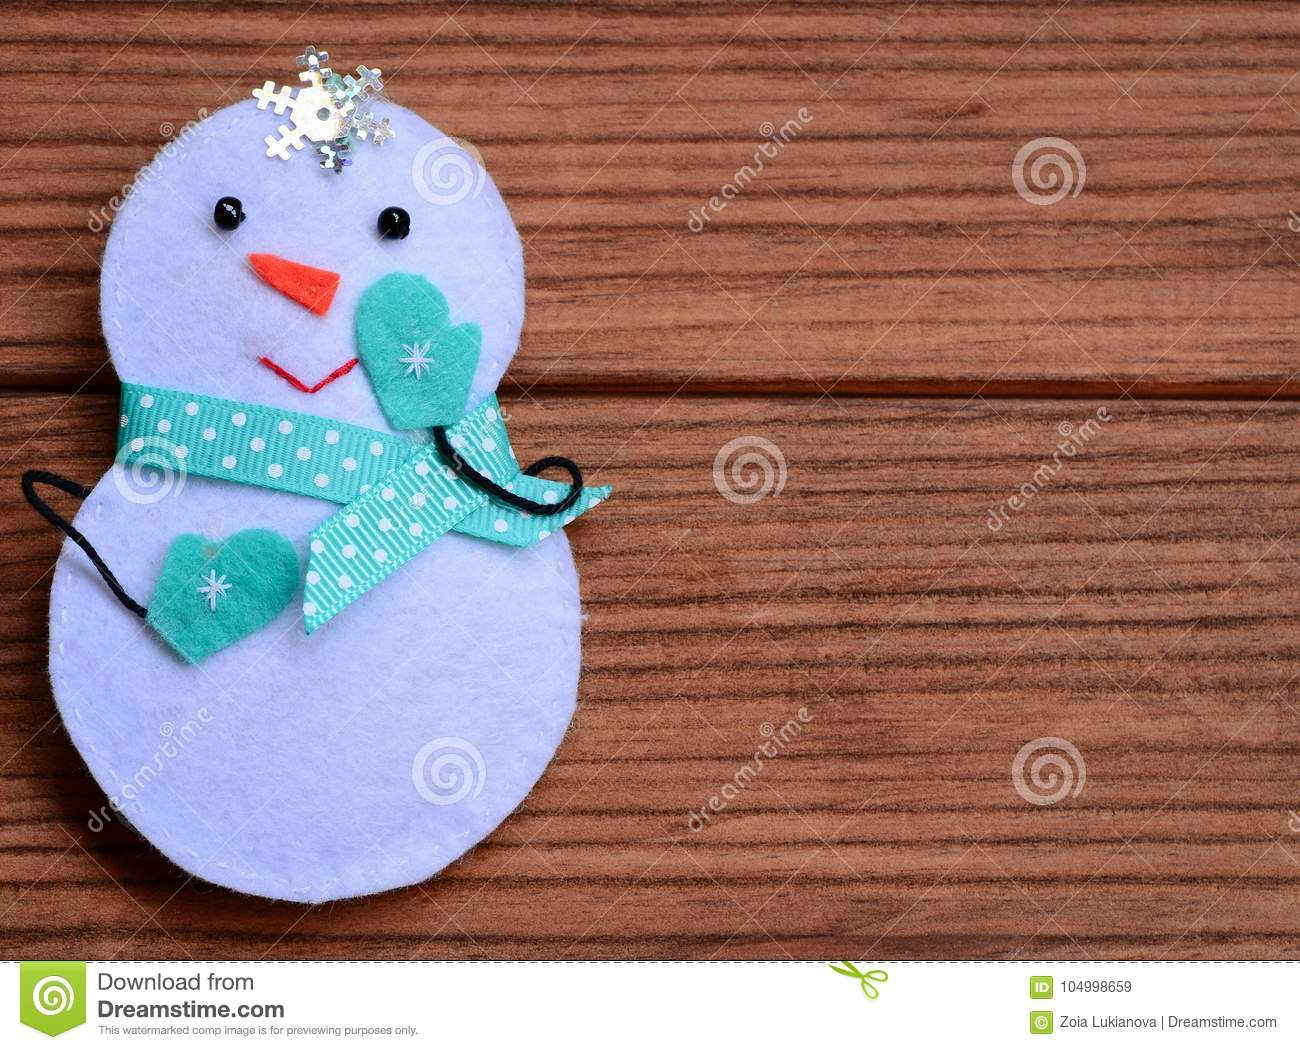 Merry Christmas Background Cute Christmas Snowman Decoration On A